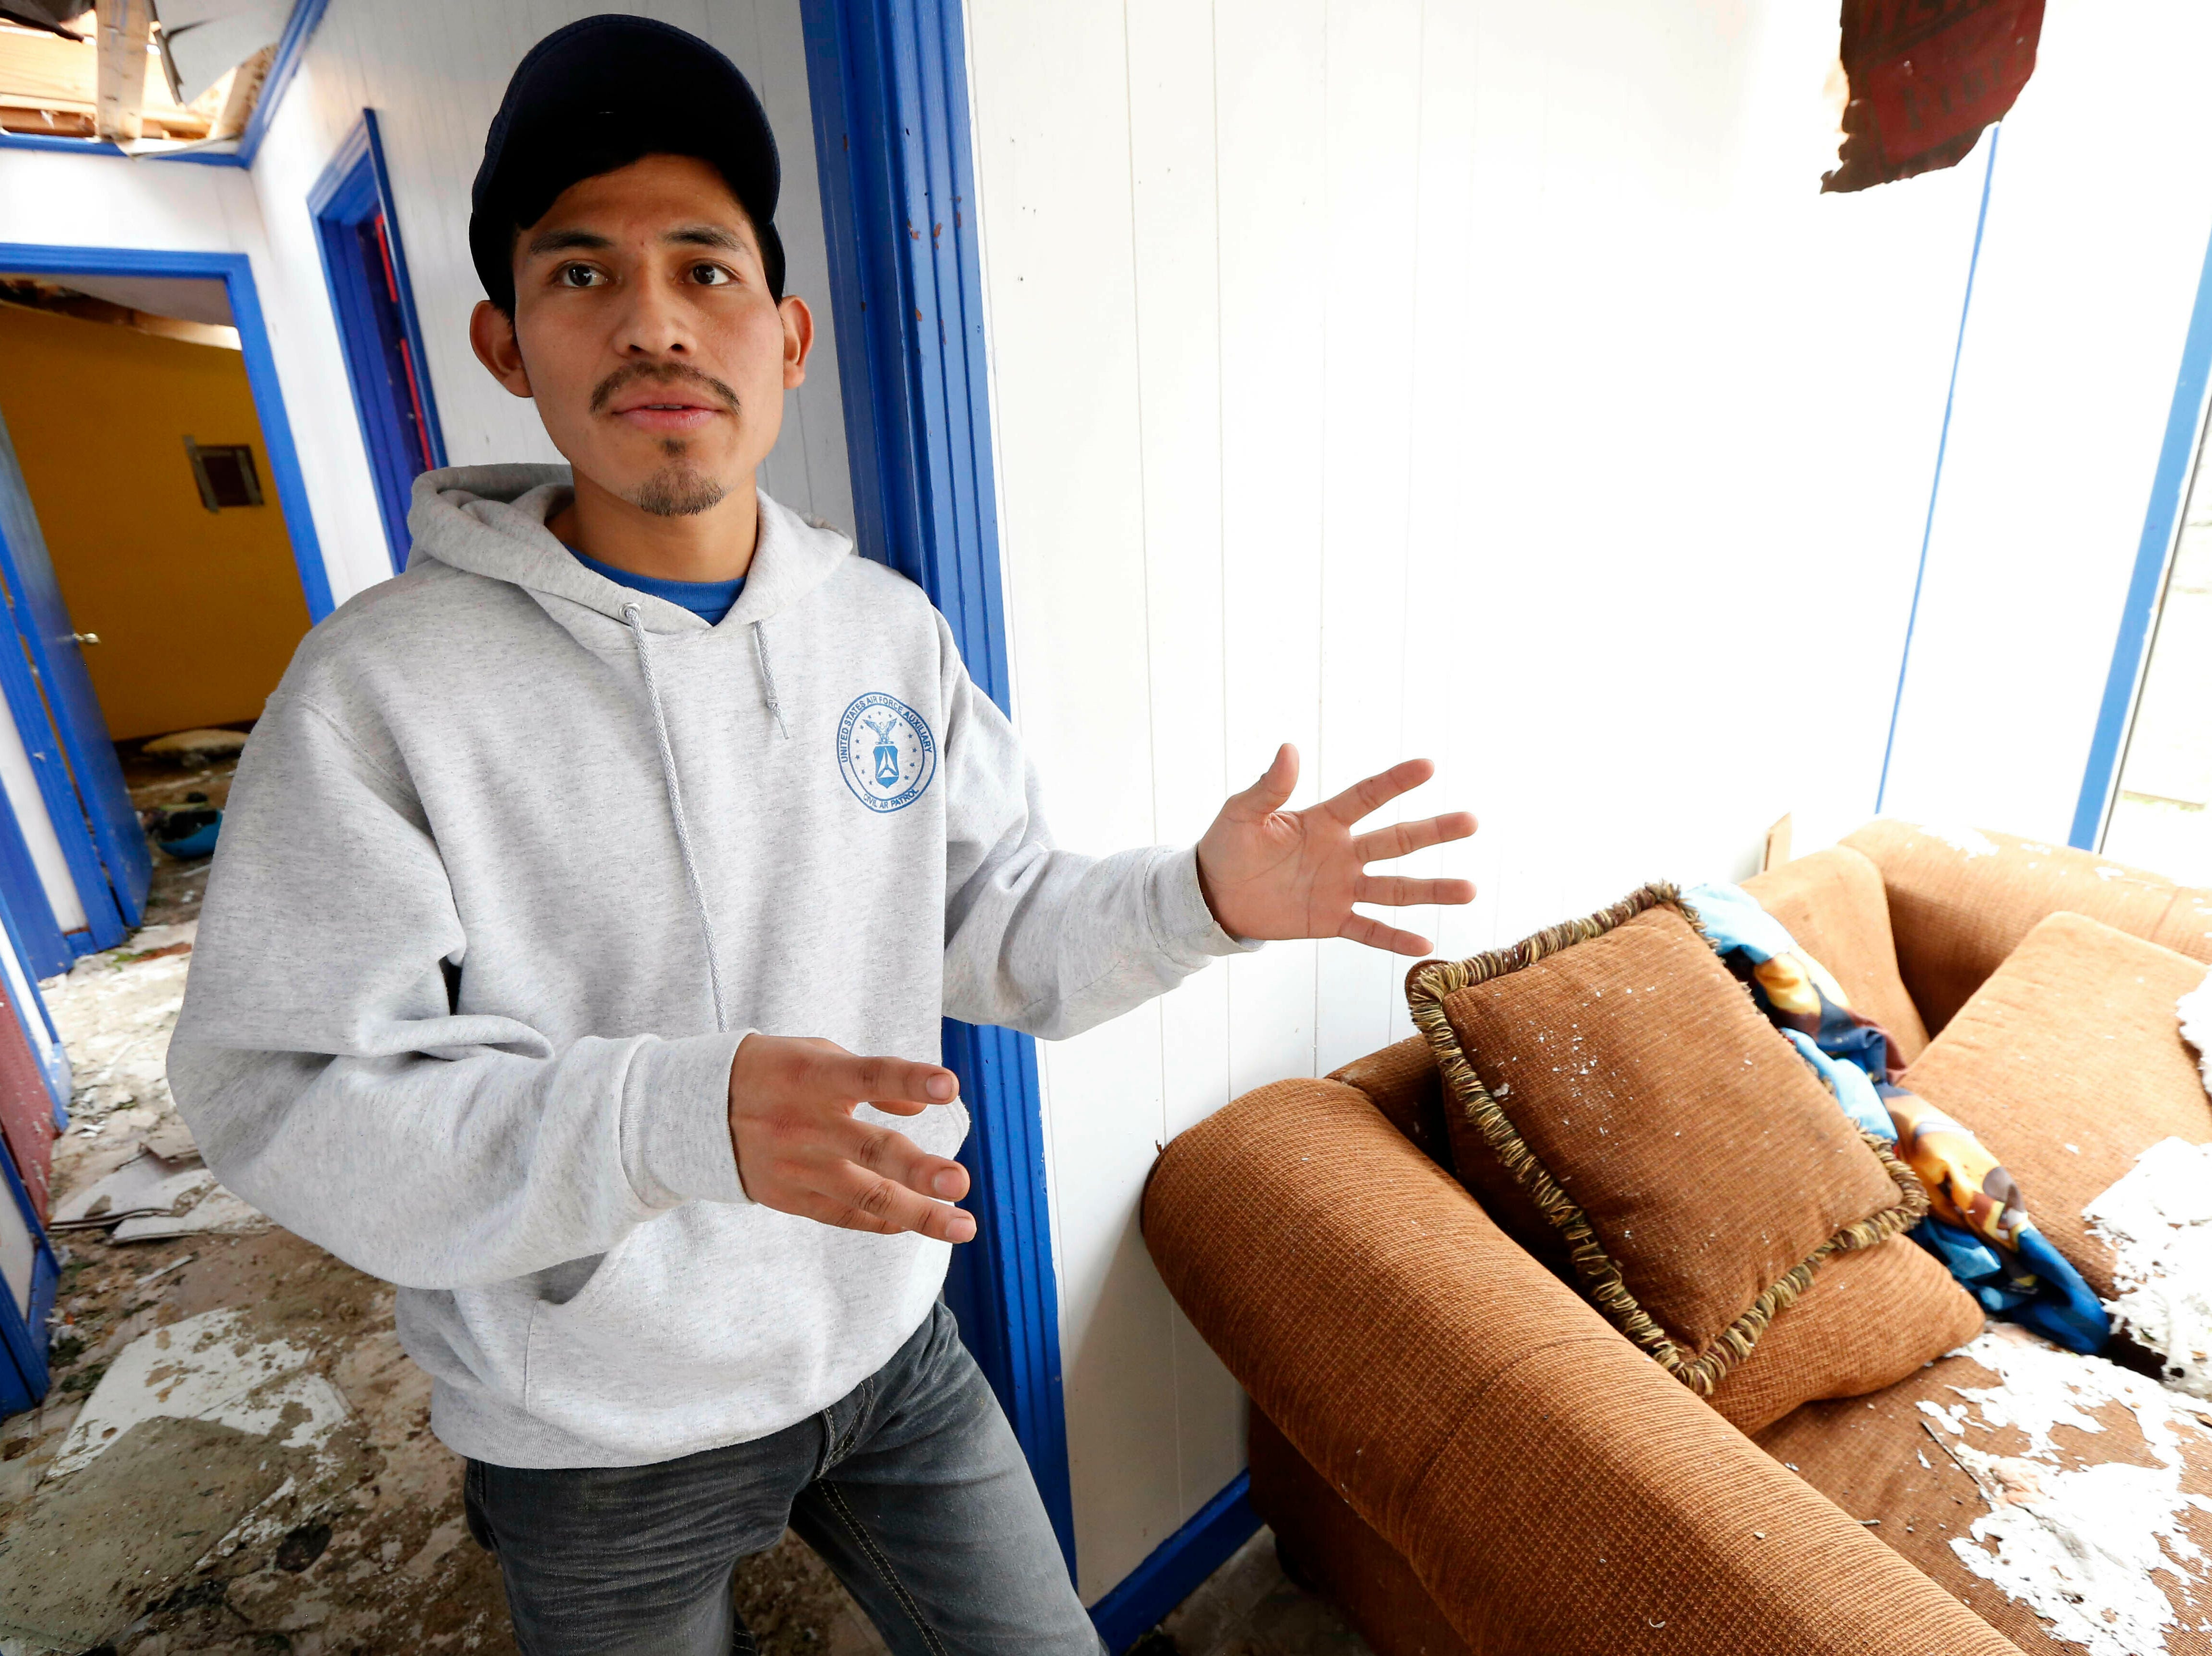 Andres Aguilar, a native of Guatemala, says Friday, April 19, 2019, that he and other family members were very scared when they heard the winds of a possible tornado hit their Morton, Miss., home, Thursday afternoon. Augilar said he and his family hid under the house's door frame as much of the roof was torn off and the windows were blown out. Strong storms again roared across the South on Thursday, topping trees and leaving a variety of damage in Mississippi, Louisiana and Texas. (AP Photo/Rogelio V. Solis)